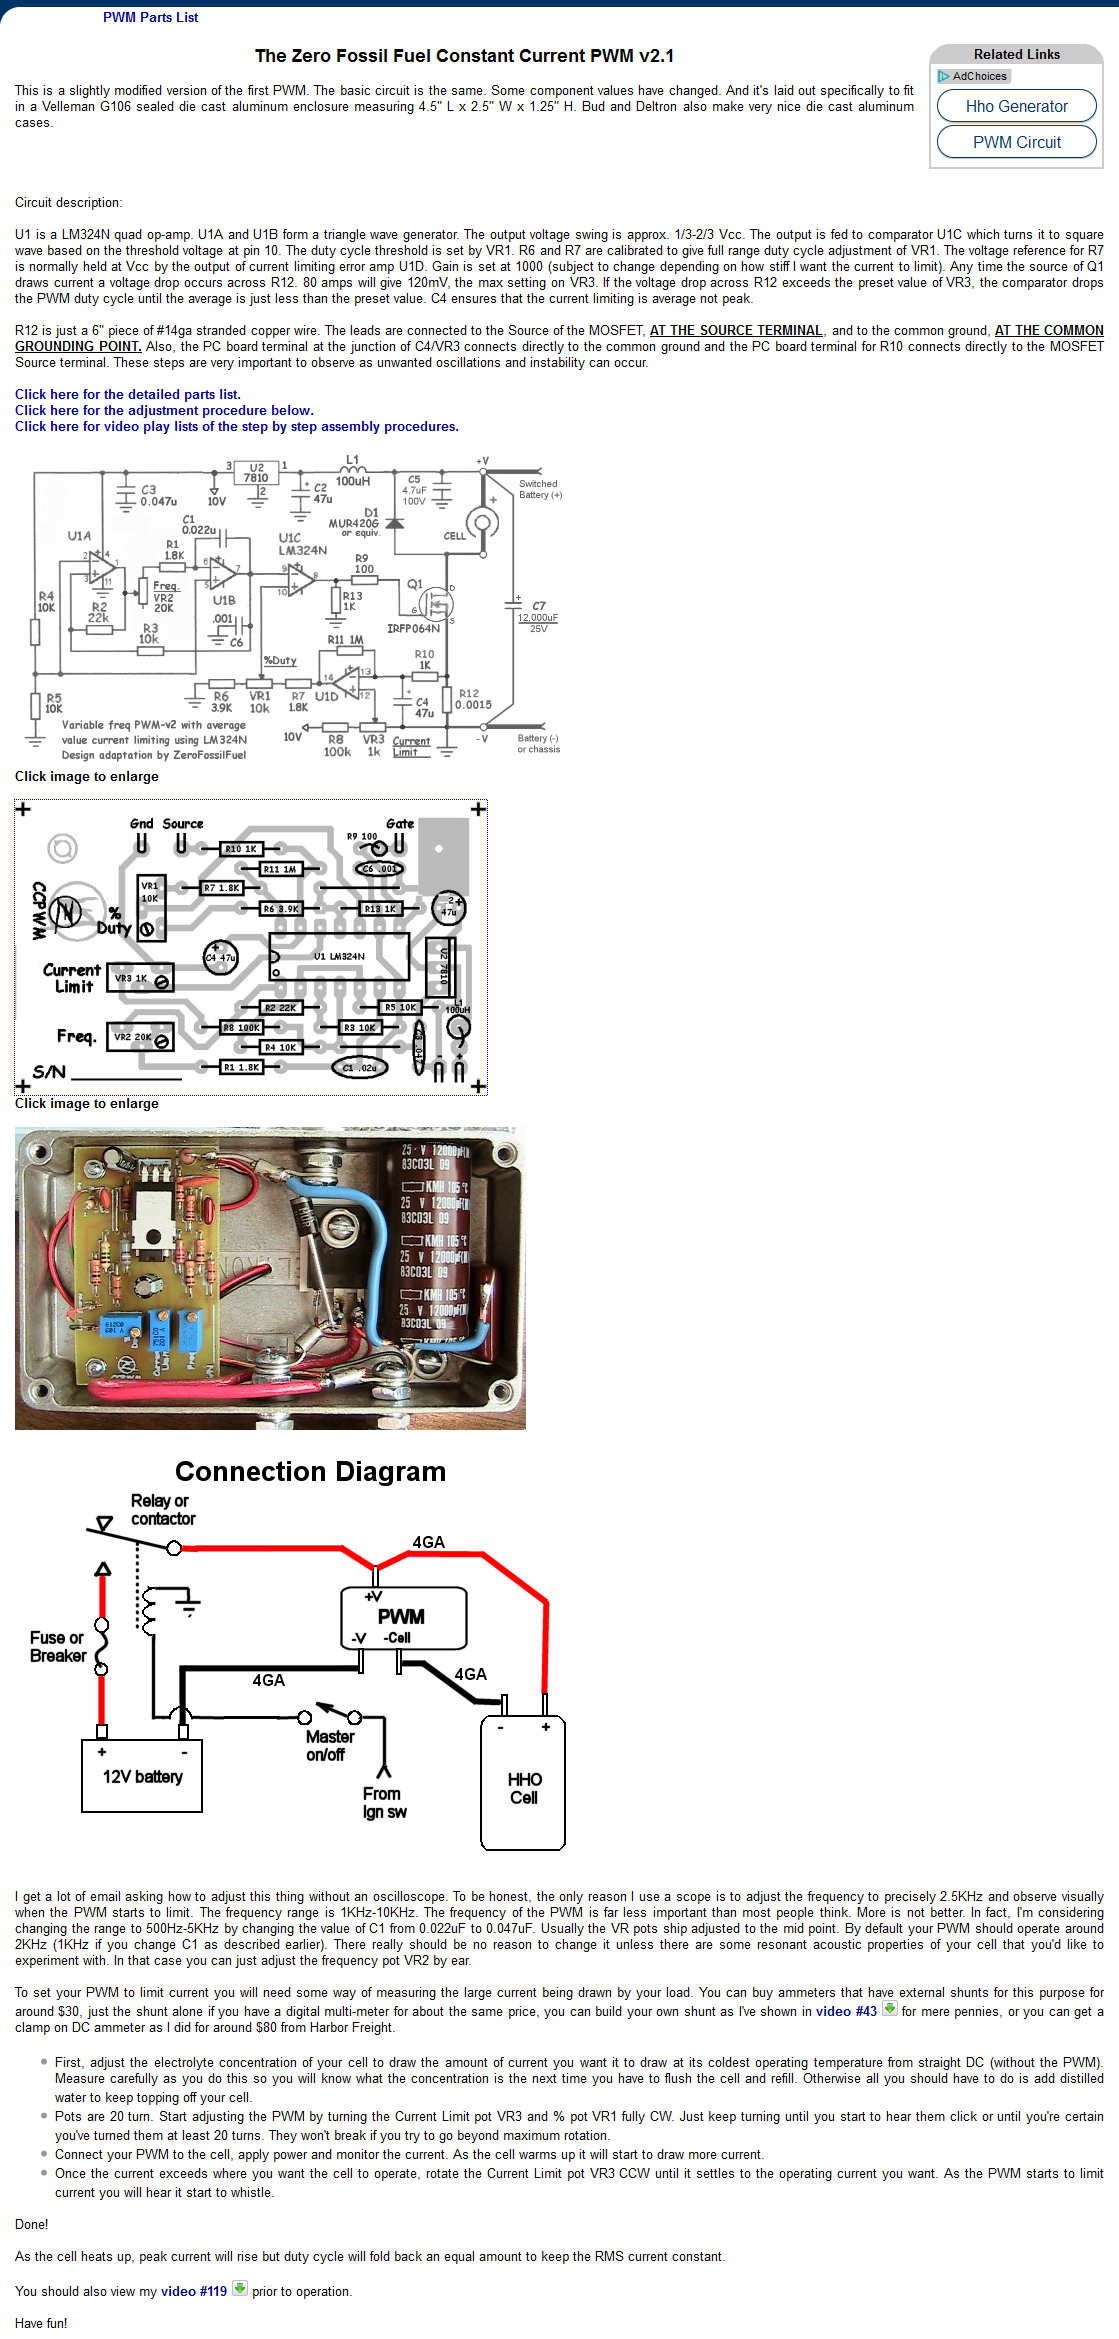 pwm v2 1 plans parts list board layout and schematic [ 1119 x 2339 Pixel ]